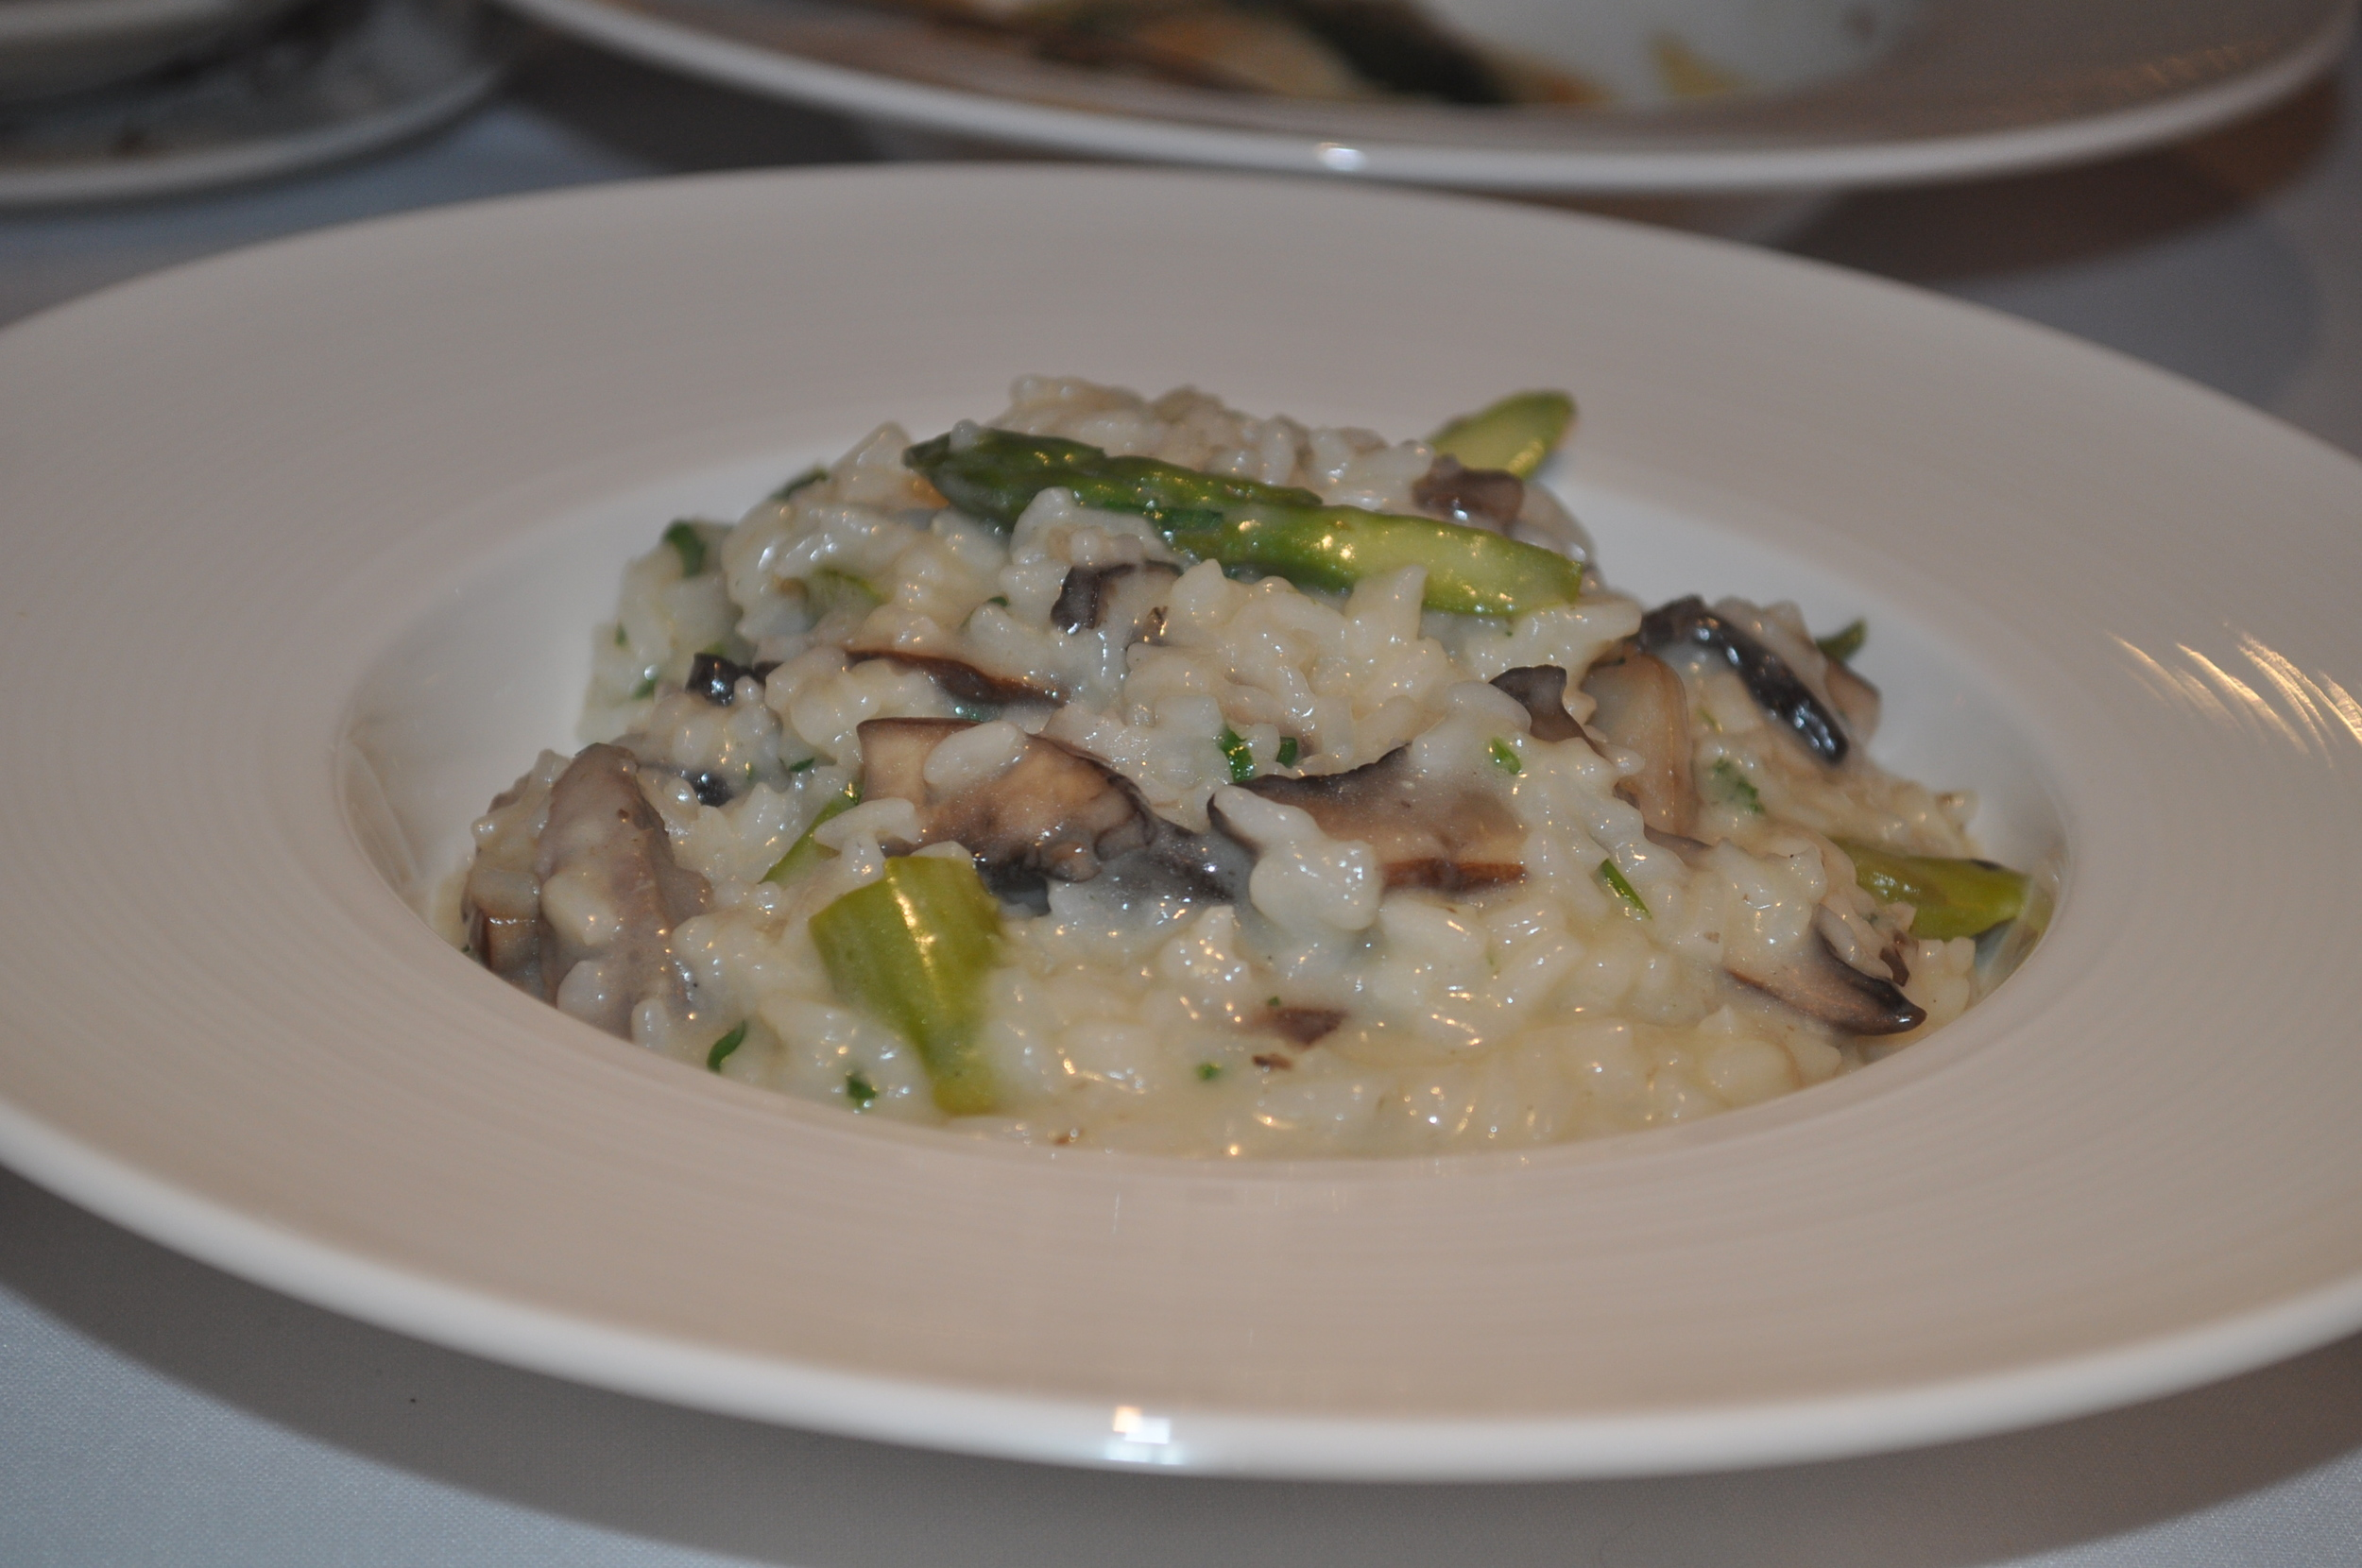 Tito puts a new spin on a classic mushroom risotto with duck sausage.